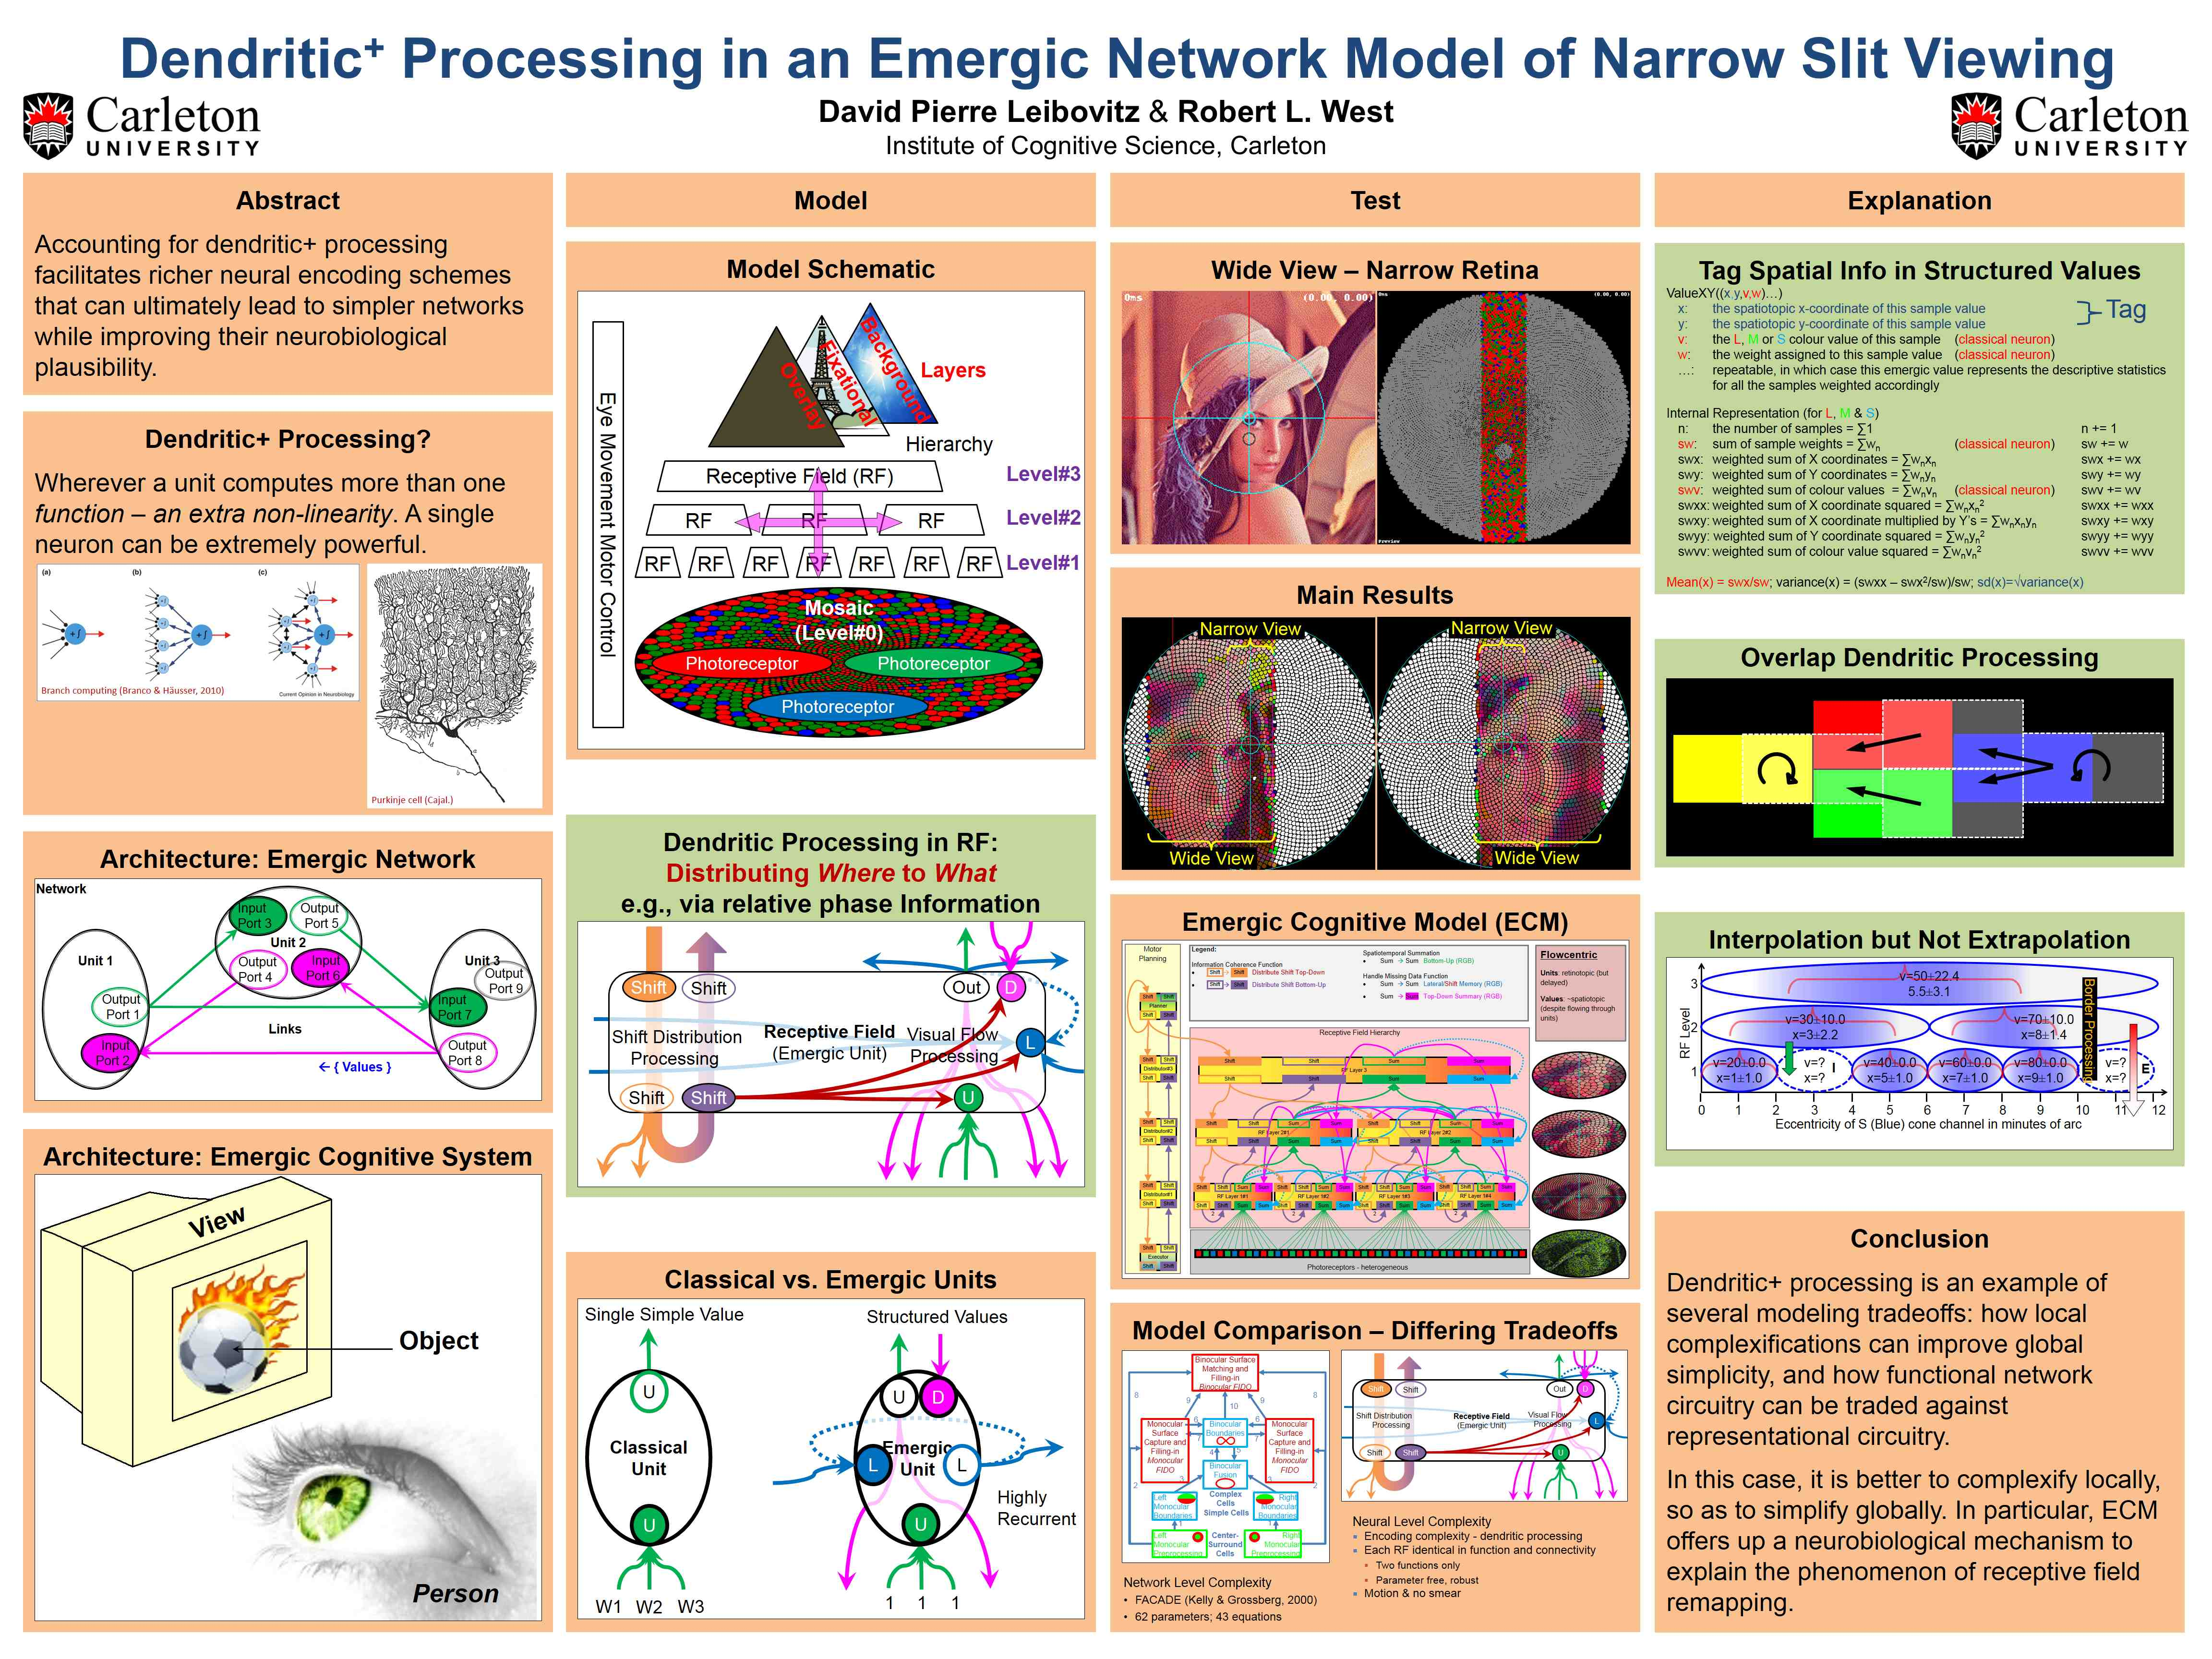 Leibovitz & West (2013) Dendritic+ Processing in an Emergic Network Model of Narrow Slit Viewing (POSTER)